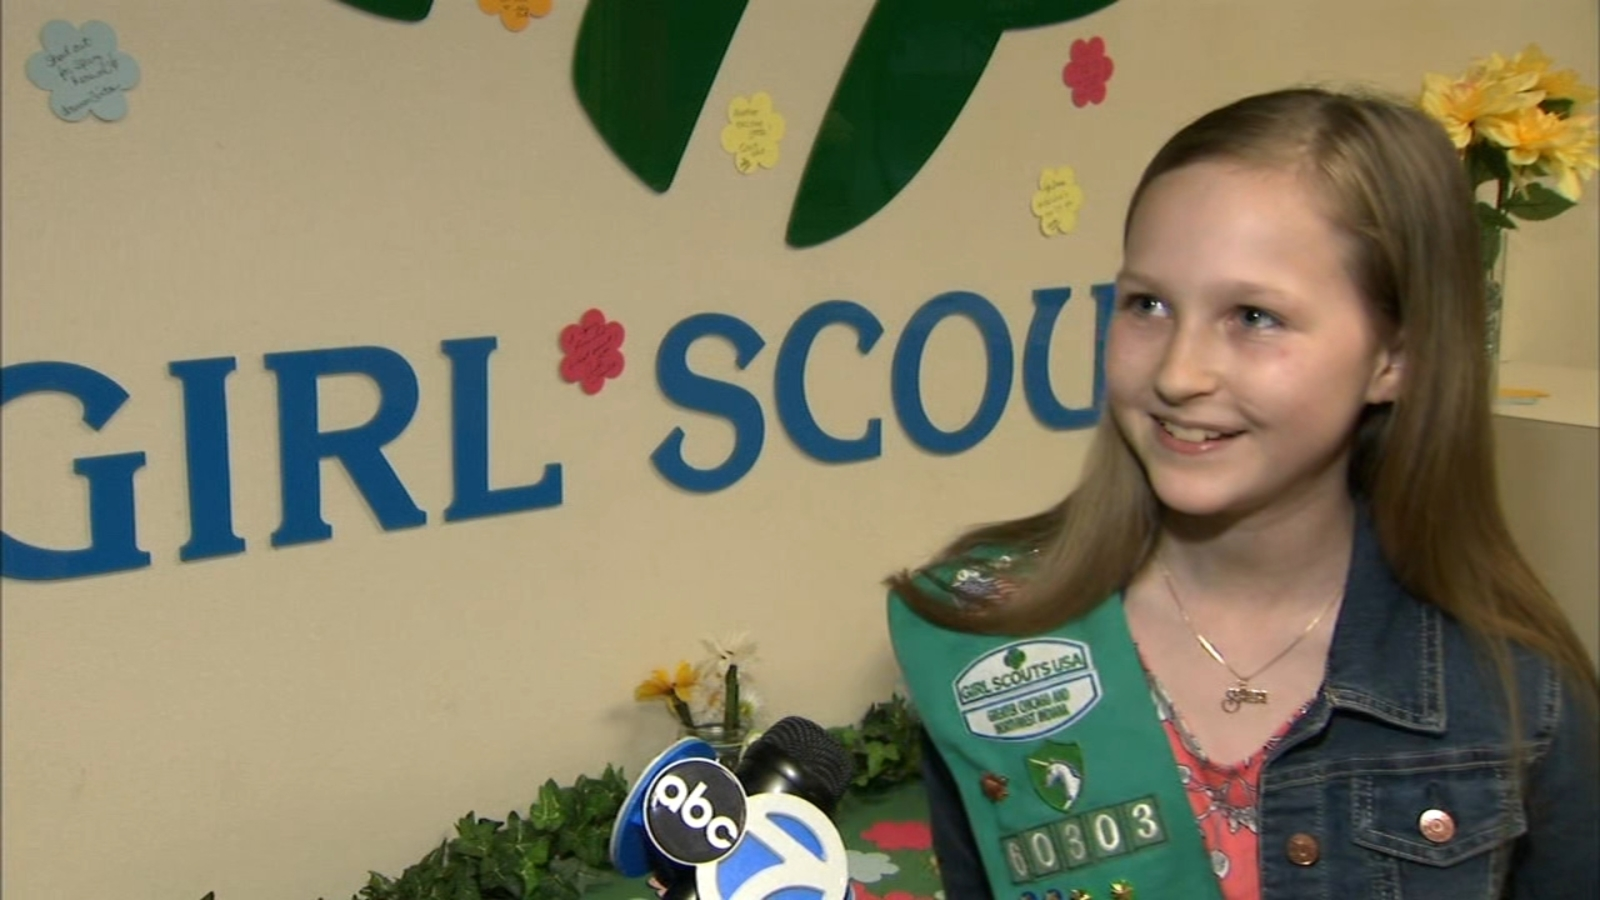 Girl, 11, sells Girl Scout cookies to send special needs school friend on Disney World trip